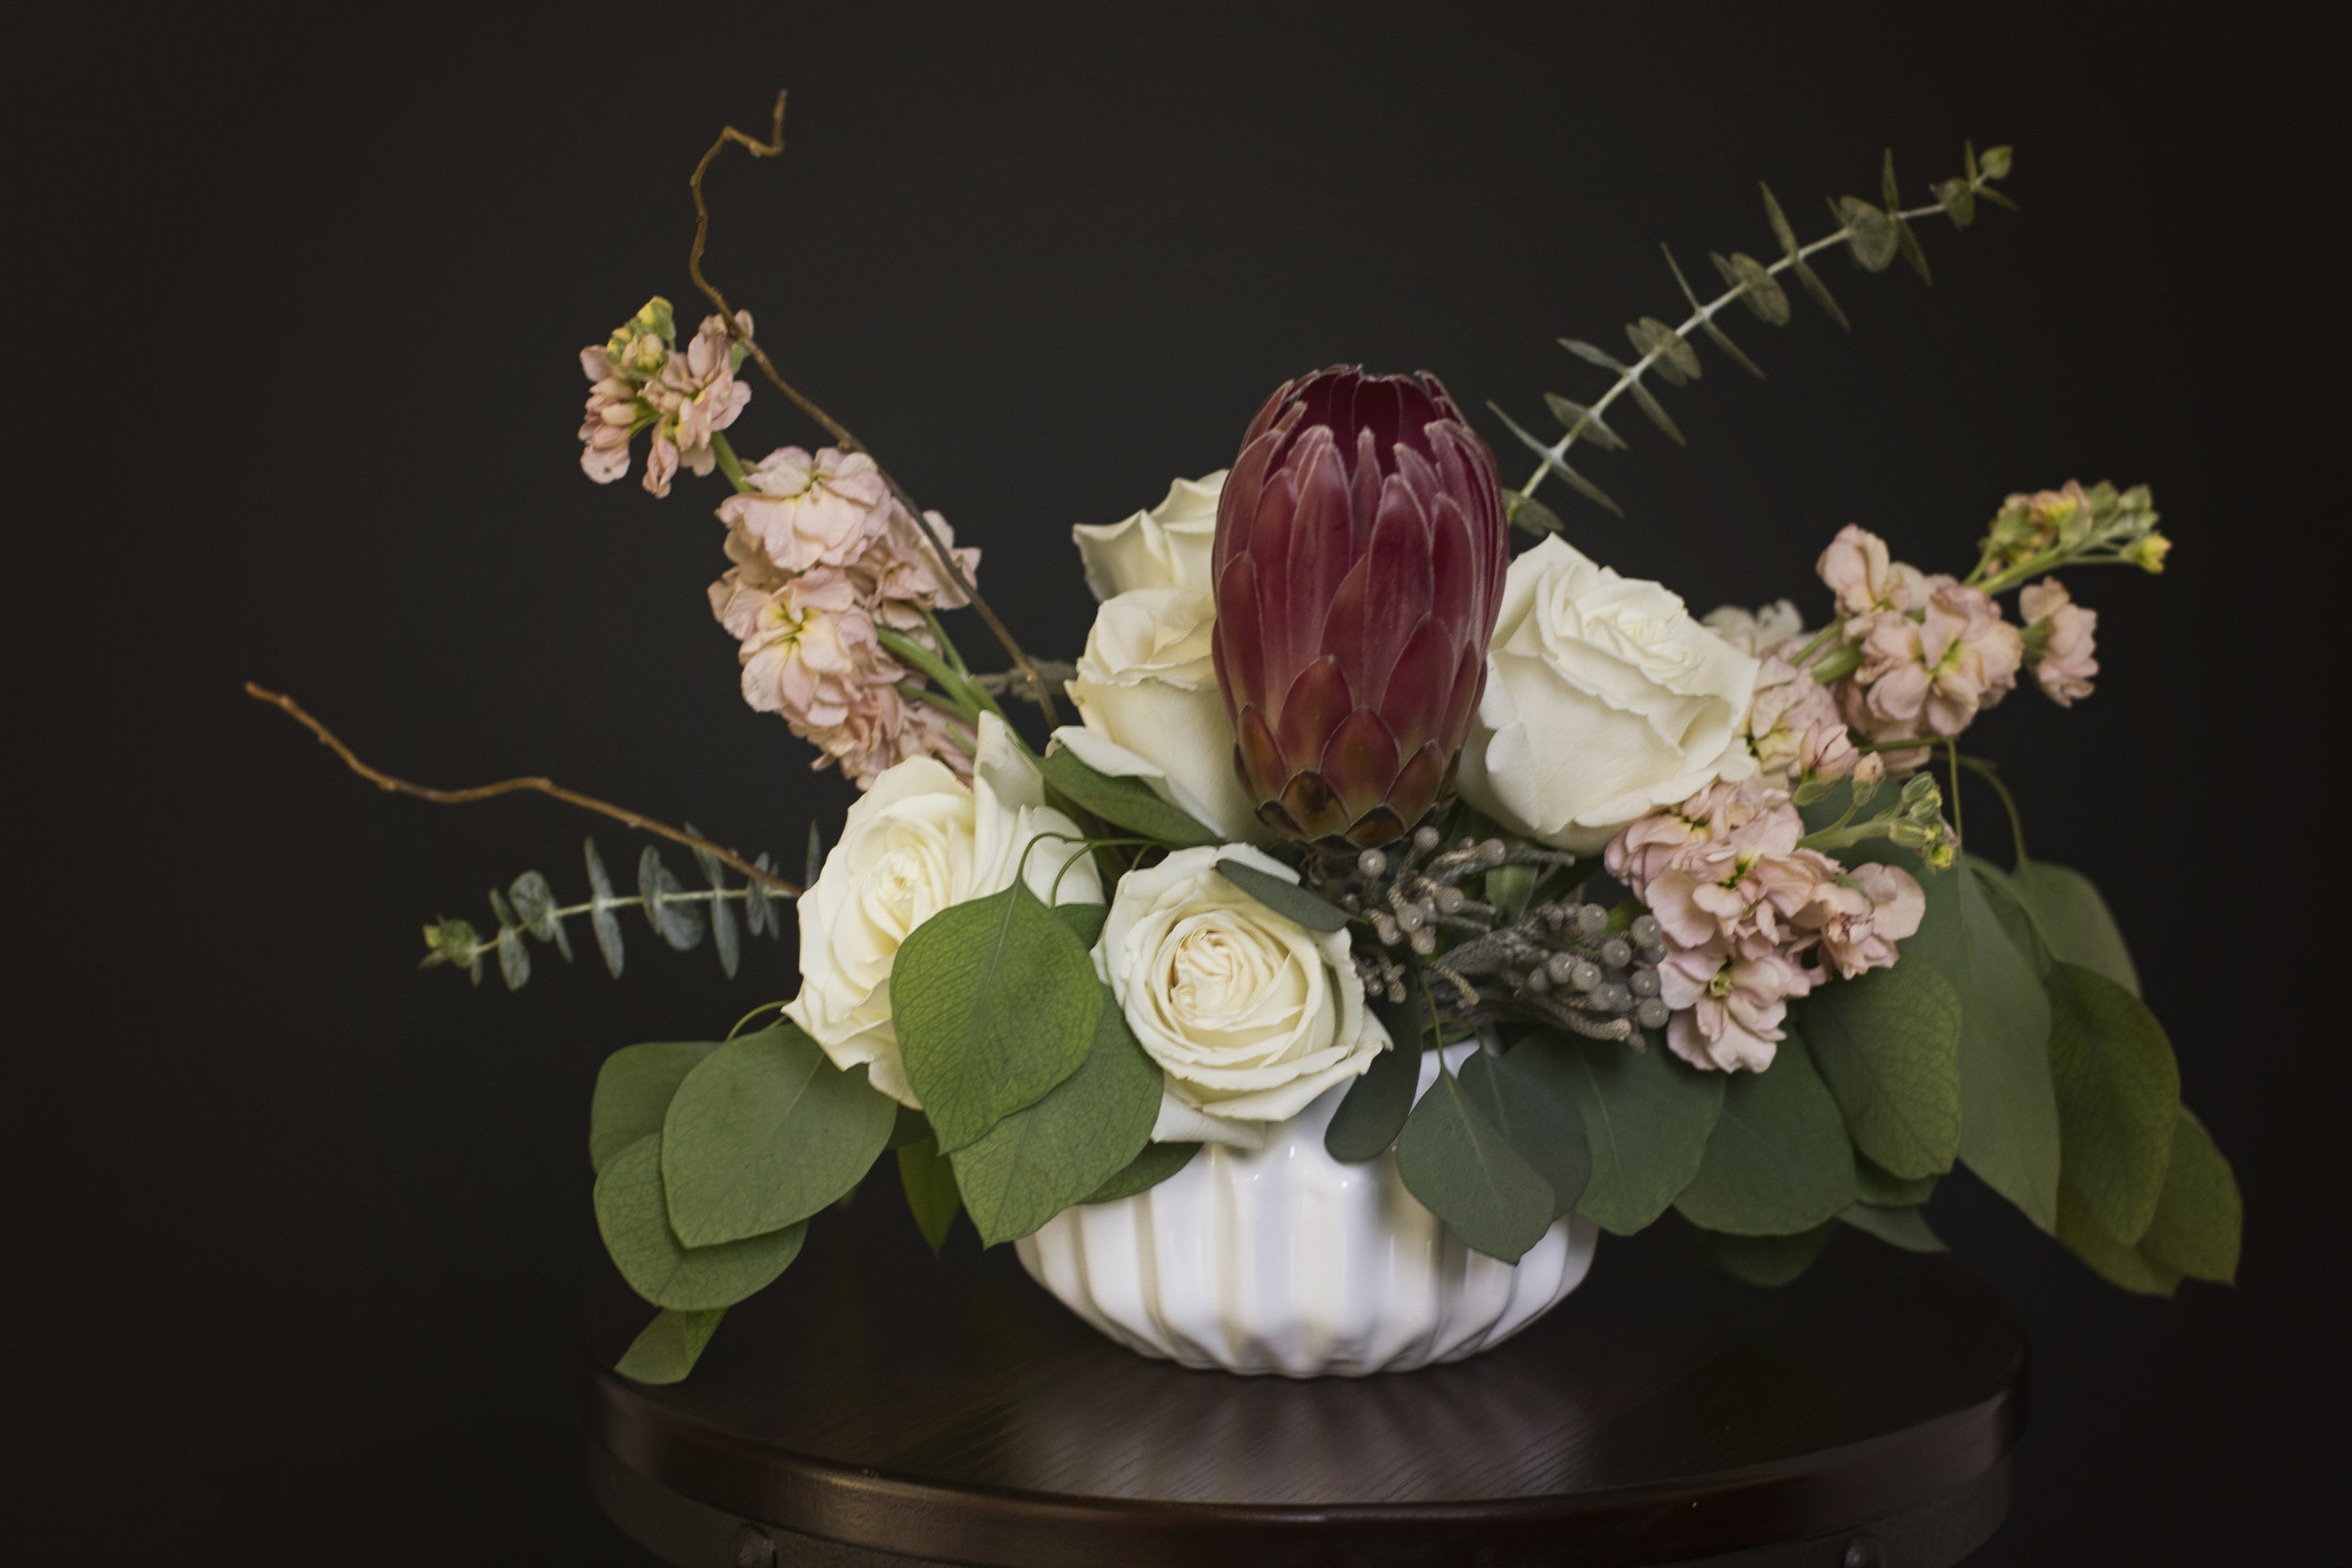 Portrait of a floral arrangement